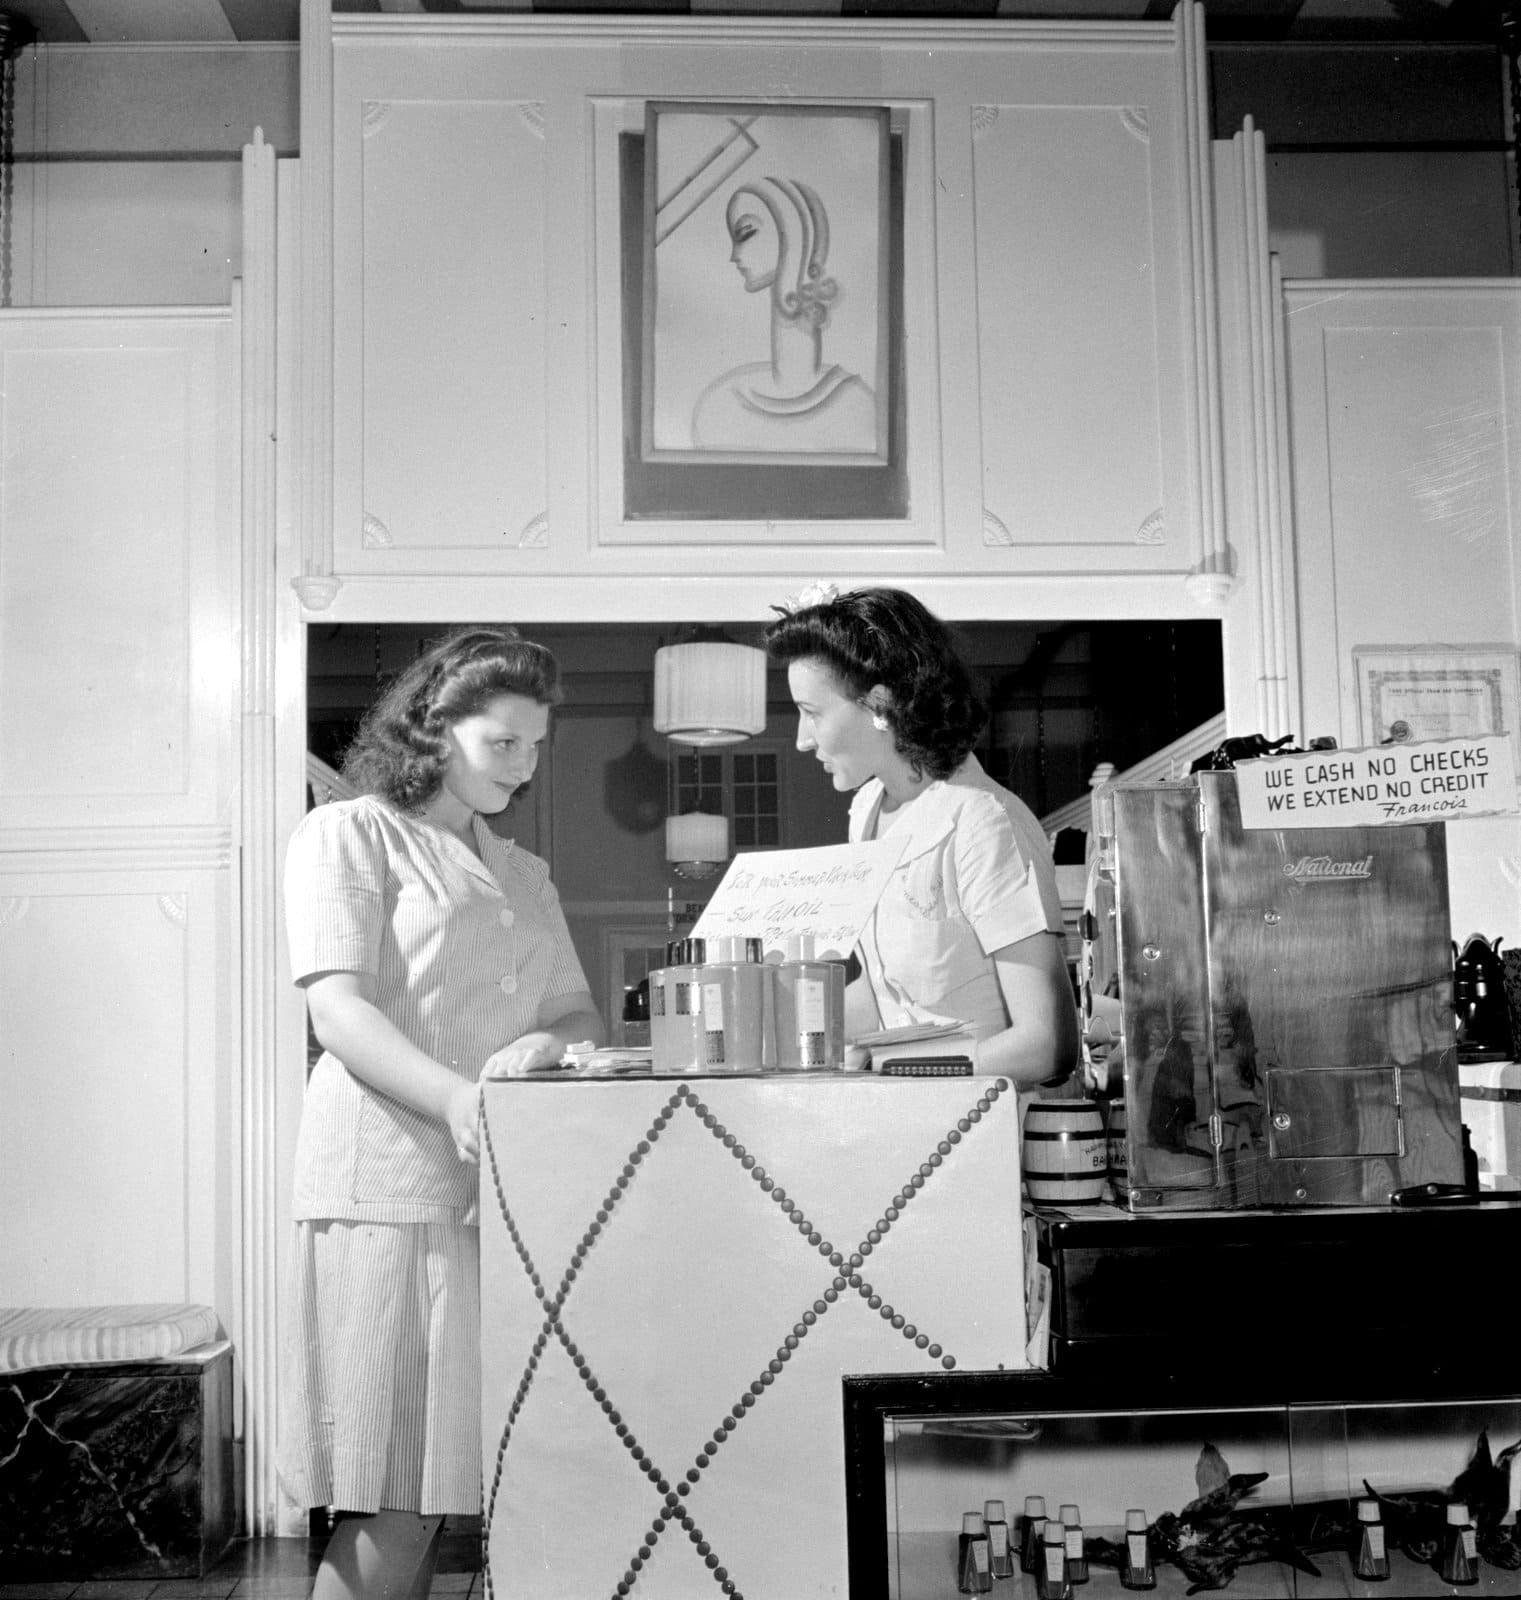 A day at a 1940s beauty parlor Front desk